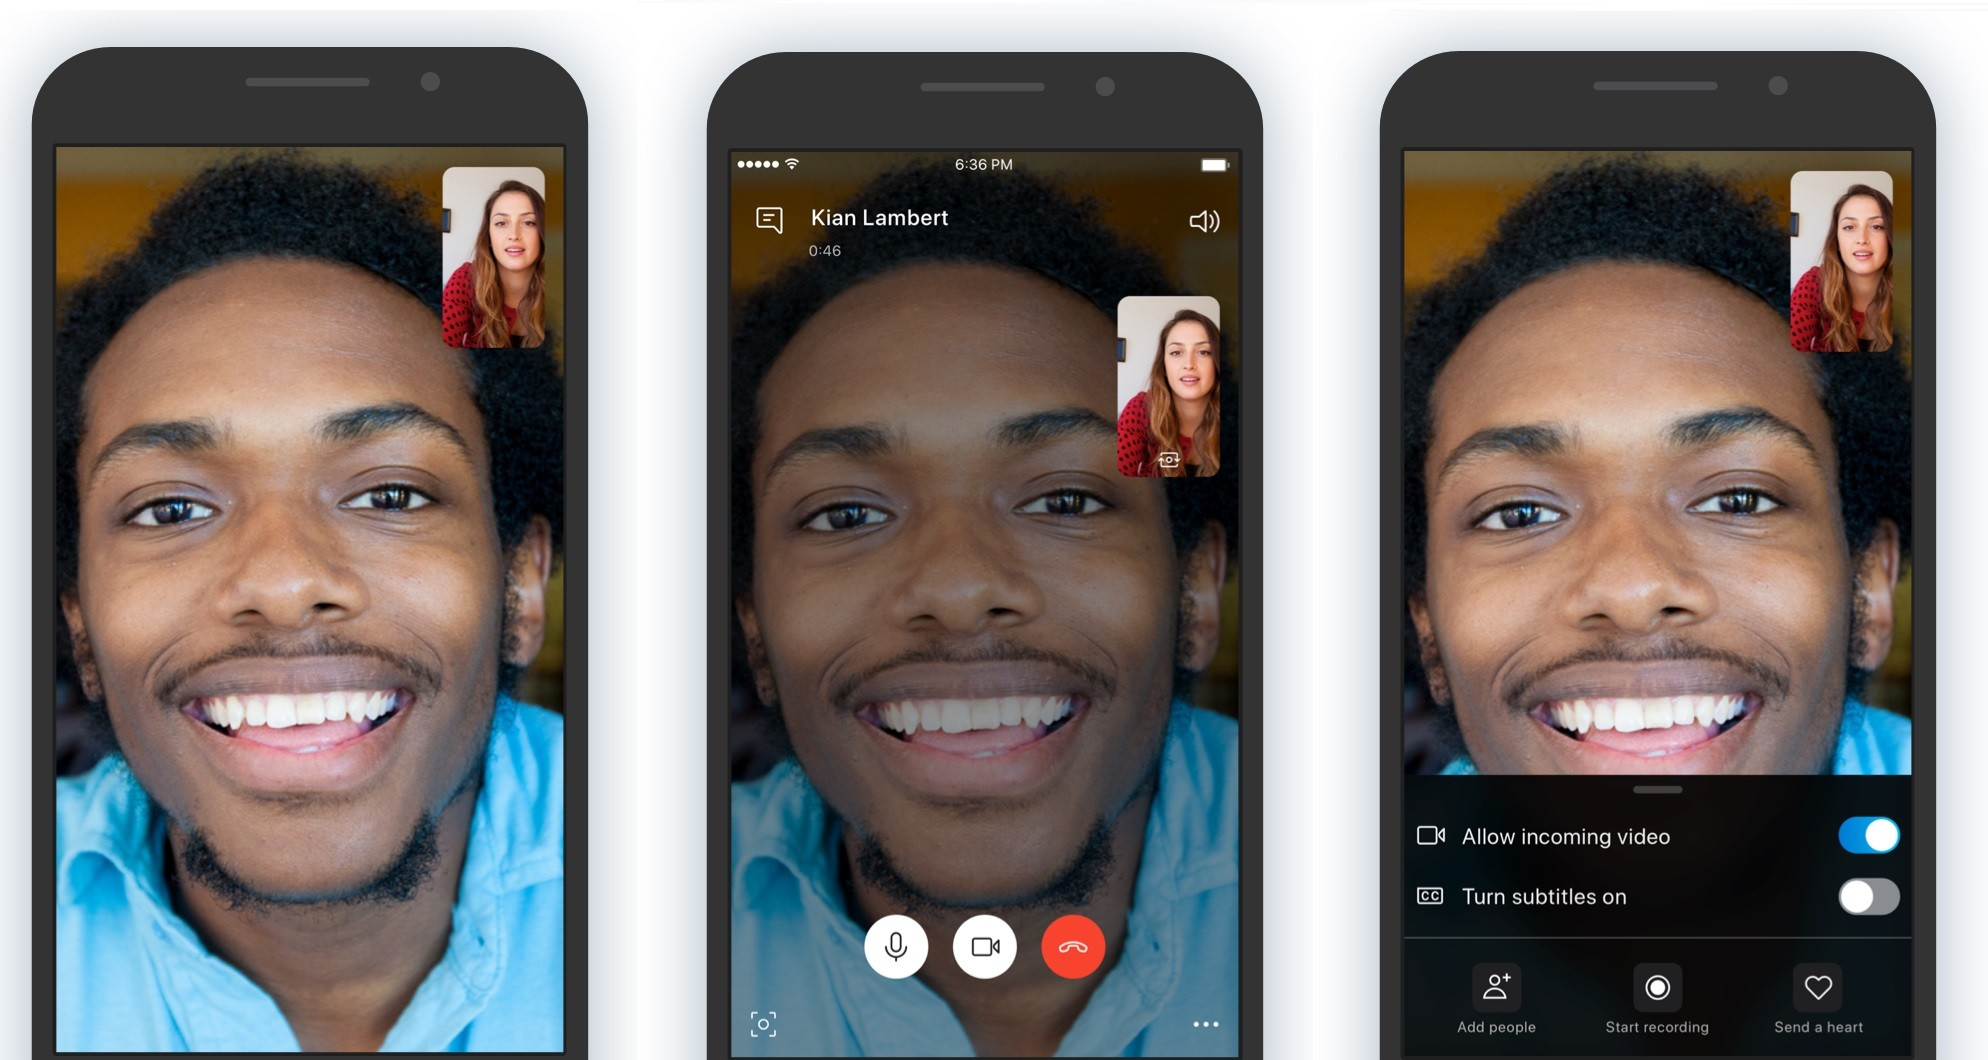 Skype rolls out a new mobile calling experience to Insiders